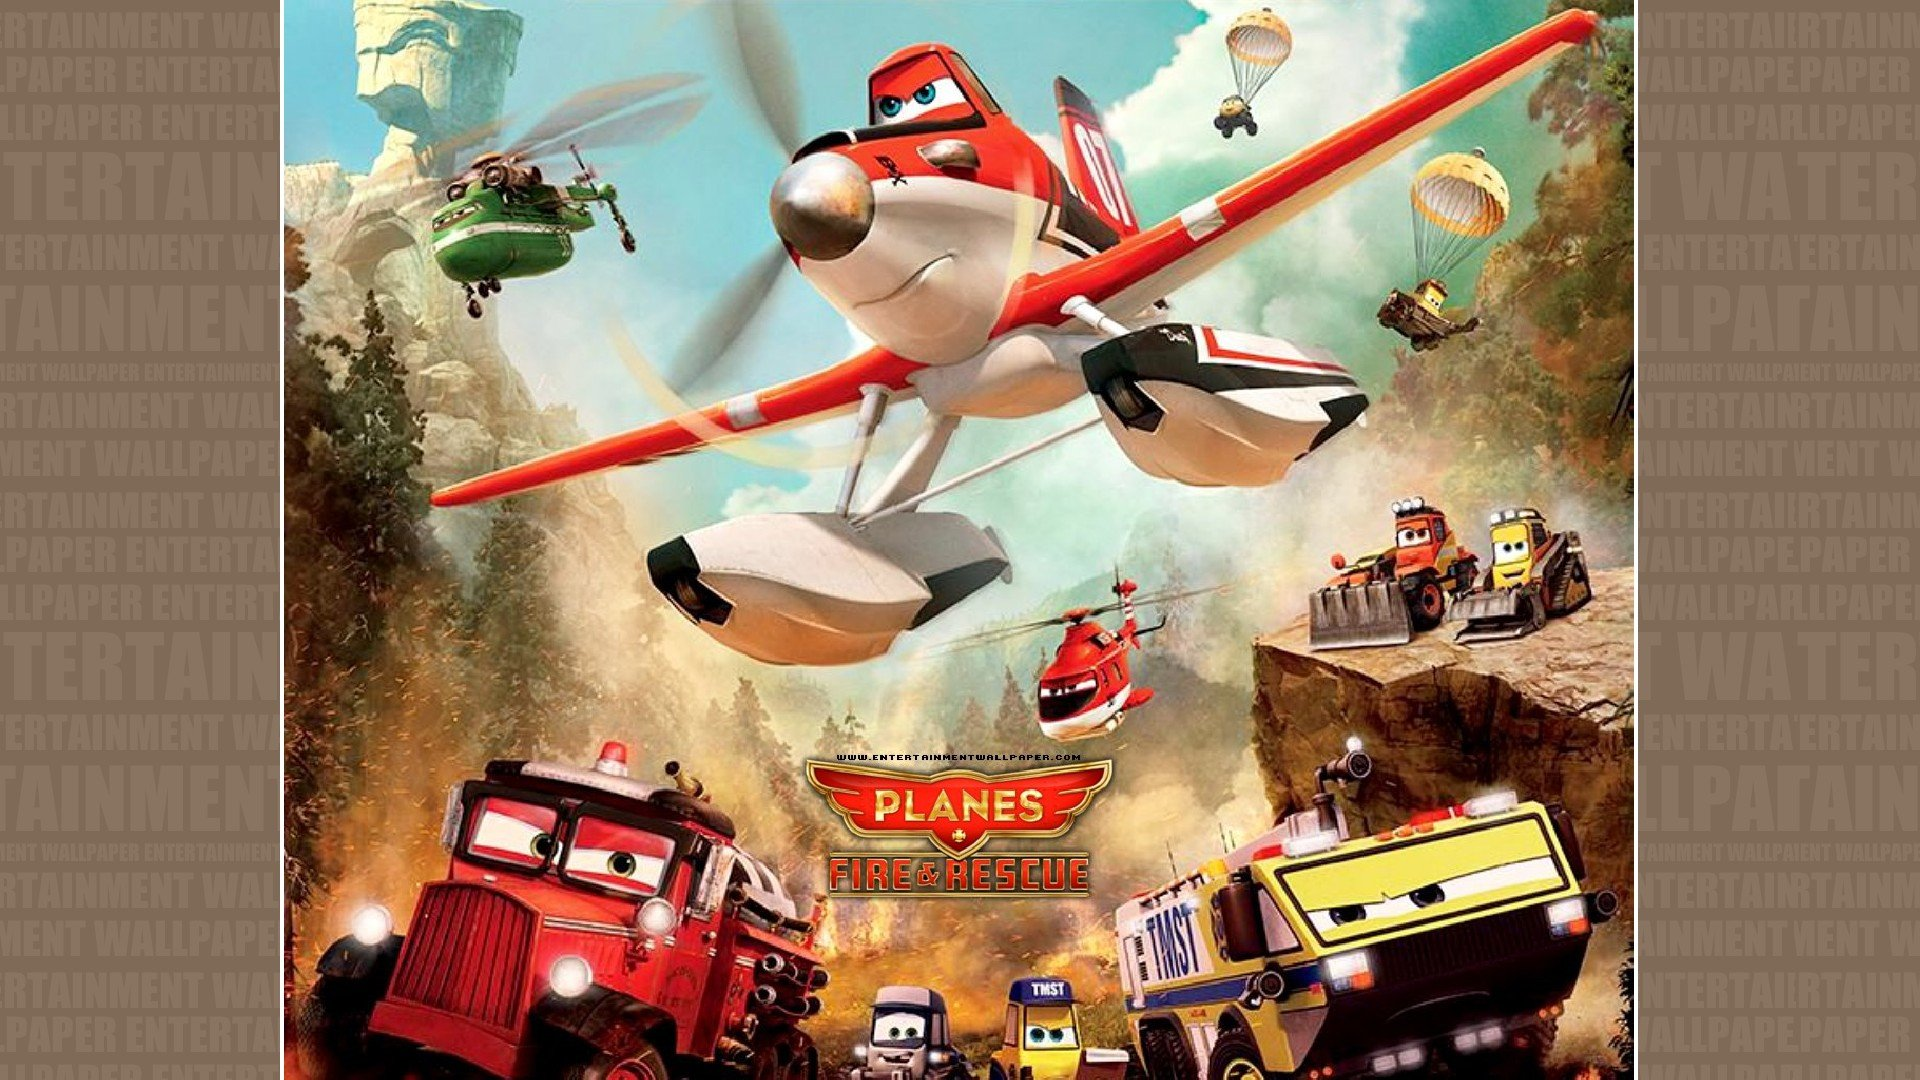 PLANES Fire Rescue animation aircraft airplane comedy ...